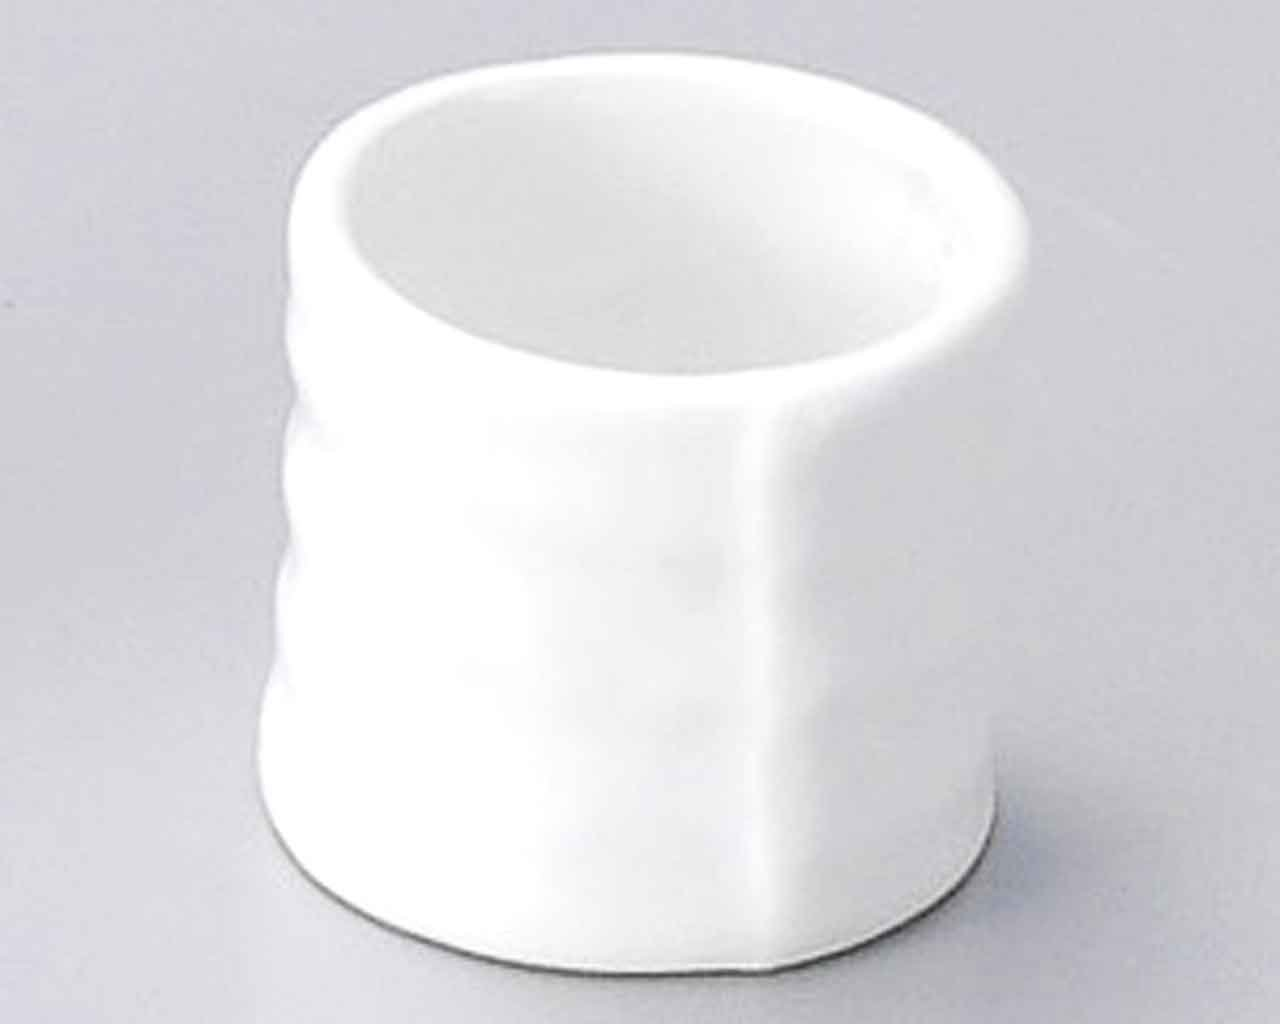 Hakuji 1.8inch Set of 5 Toothpick holders White porcelain Made in Japan